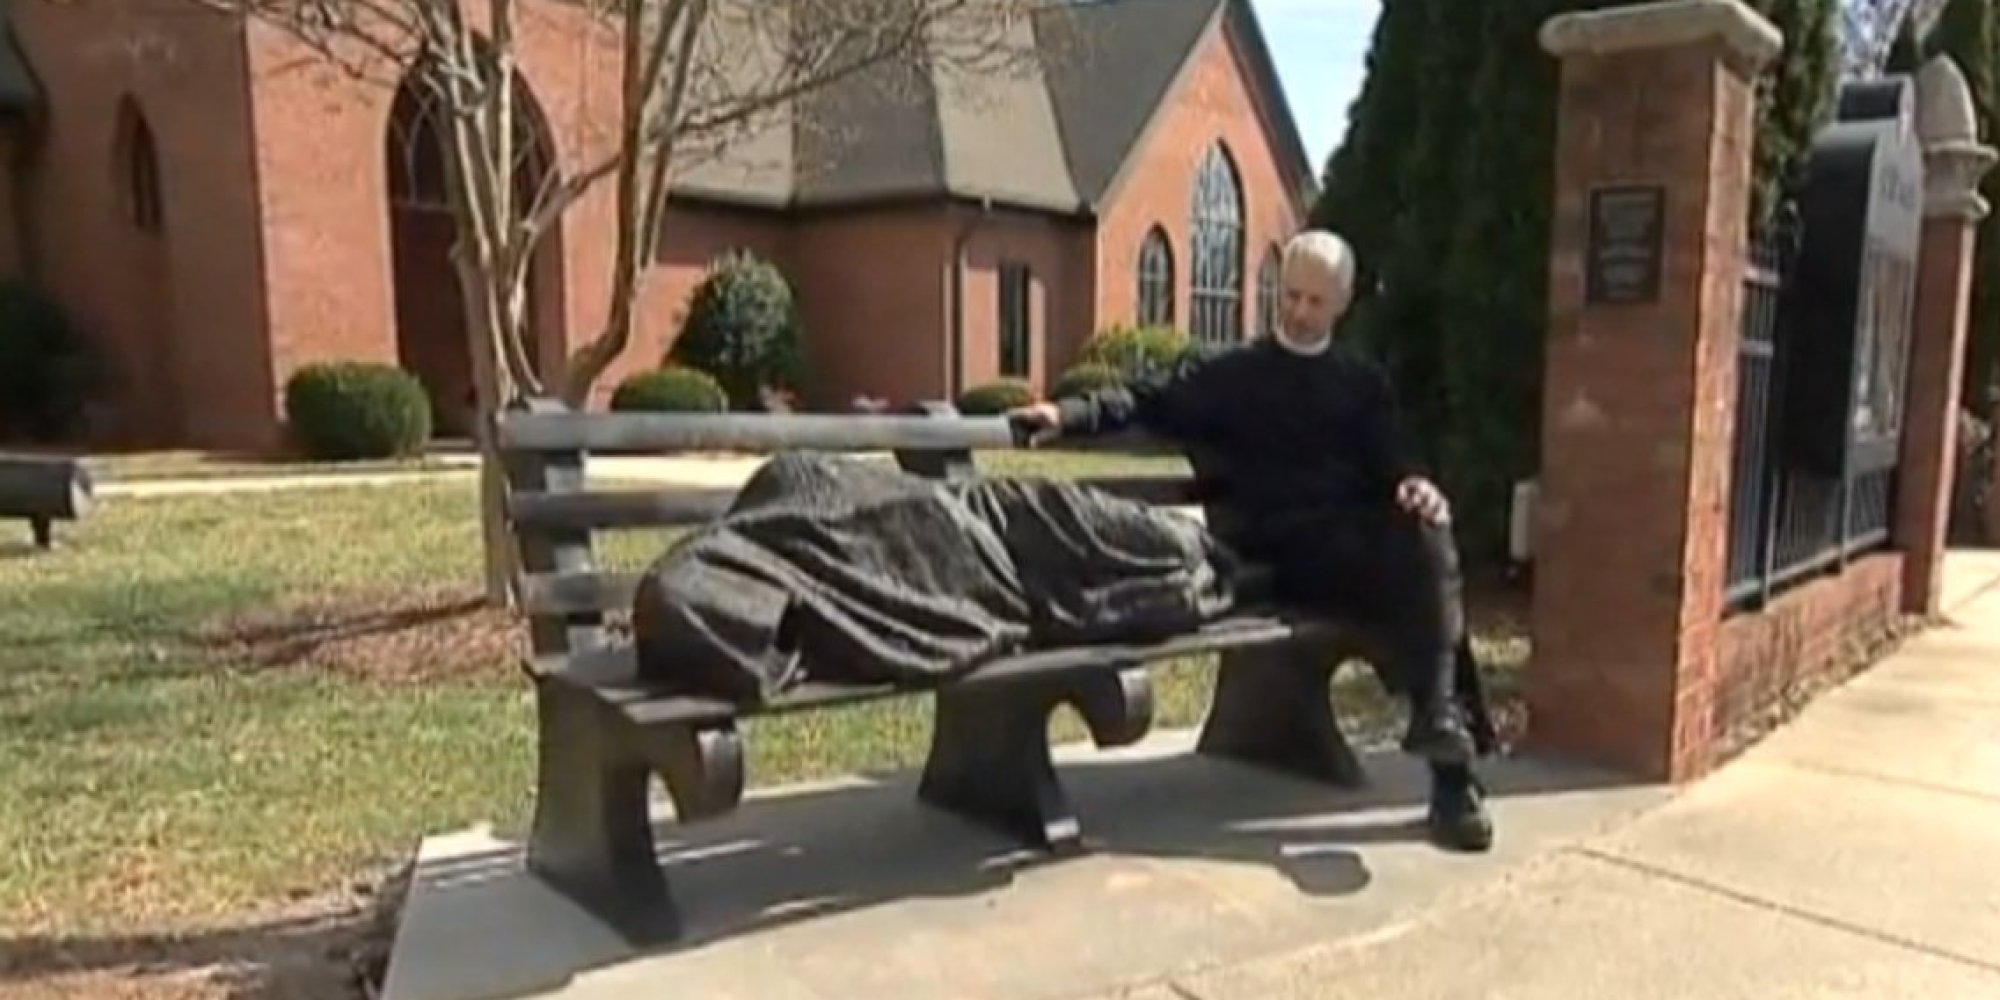 O Homeless Jesus Facebook on Do Not Care About What People Think In Church